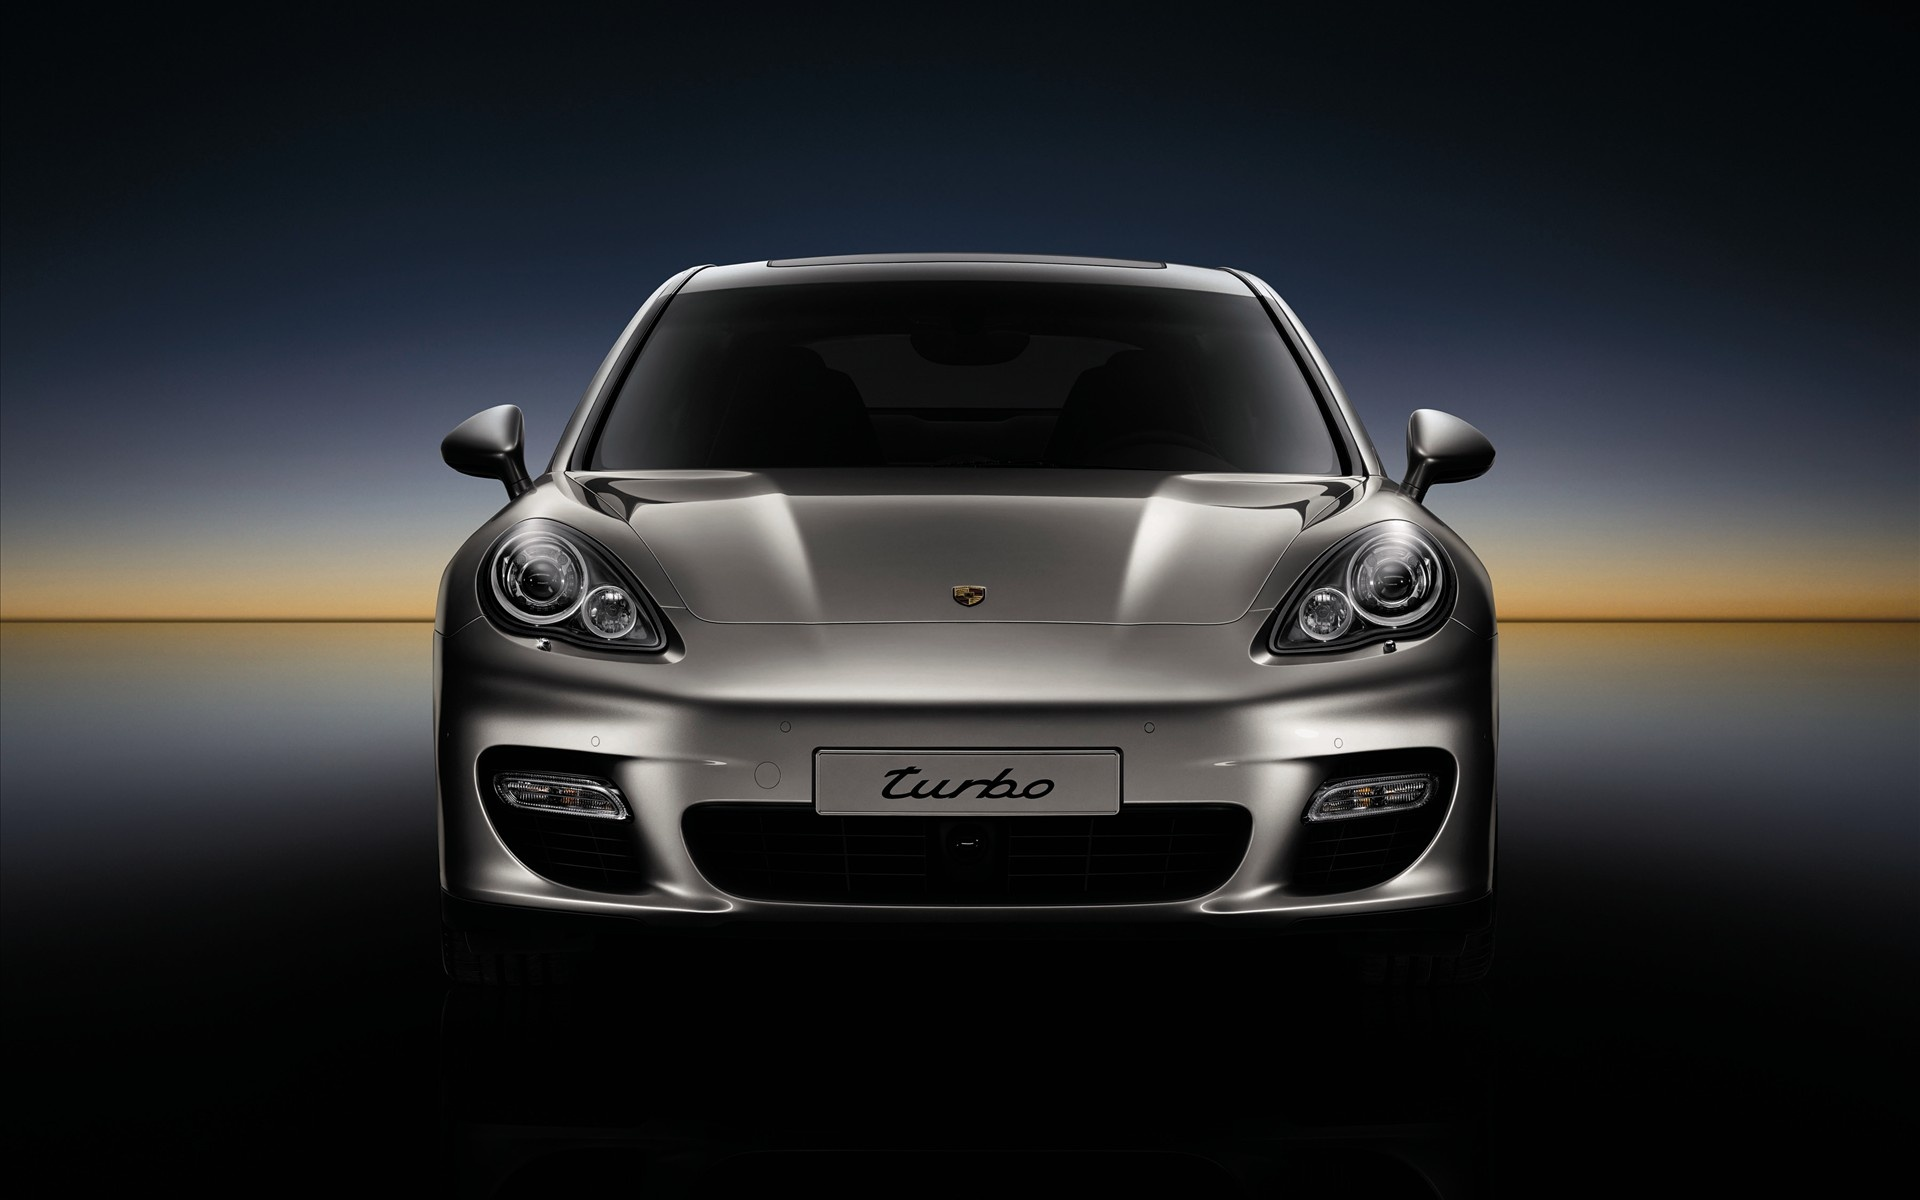 download Stunnic Panamera Turbo Hd Wallpaper